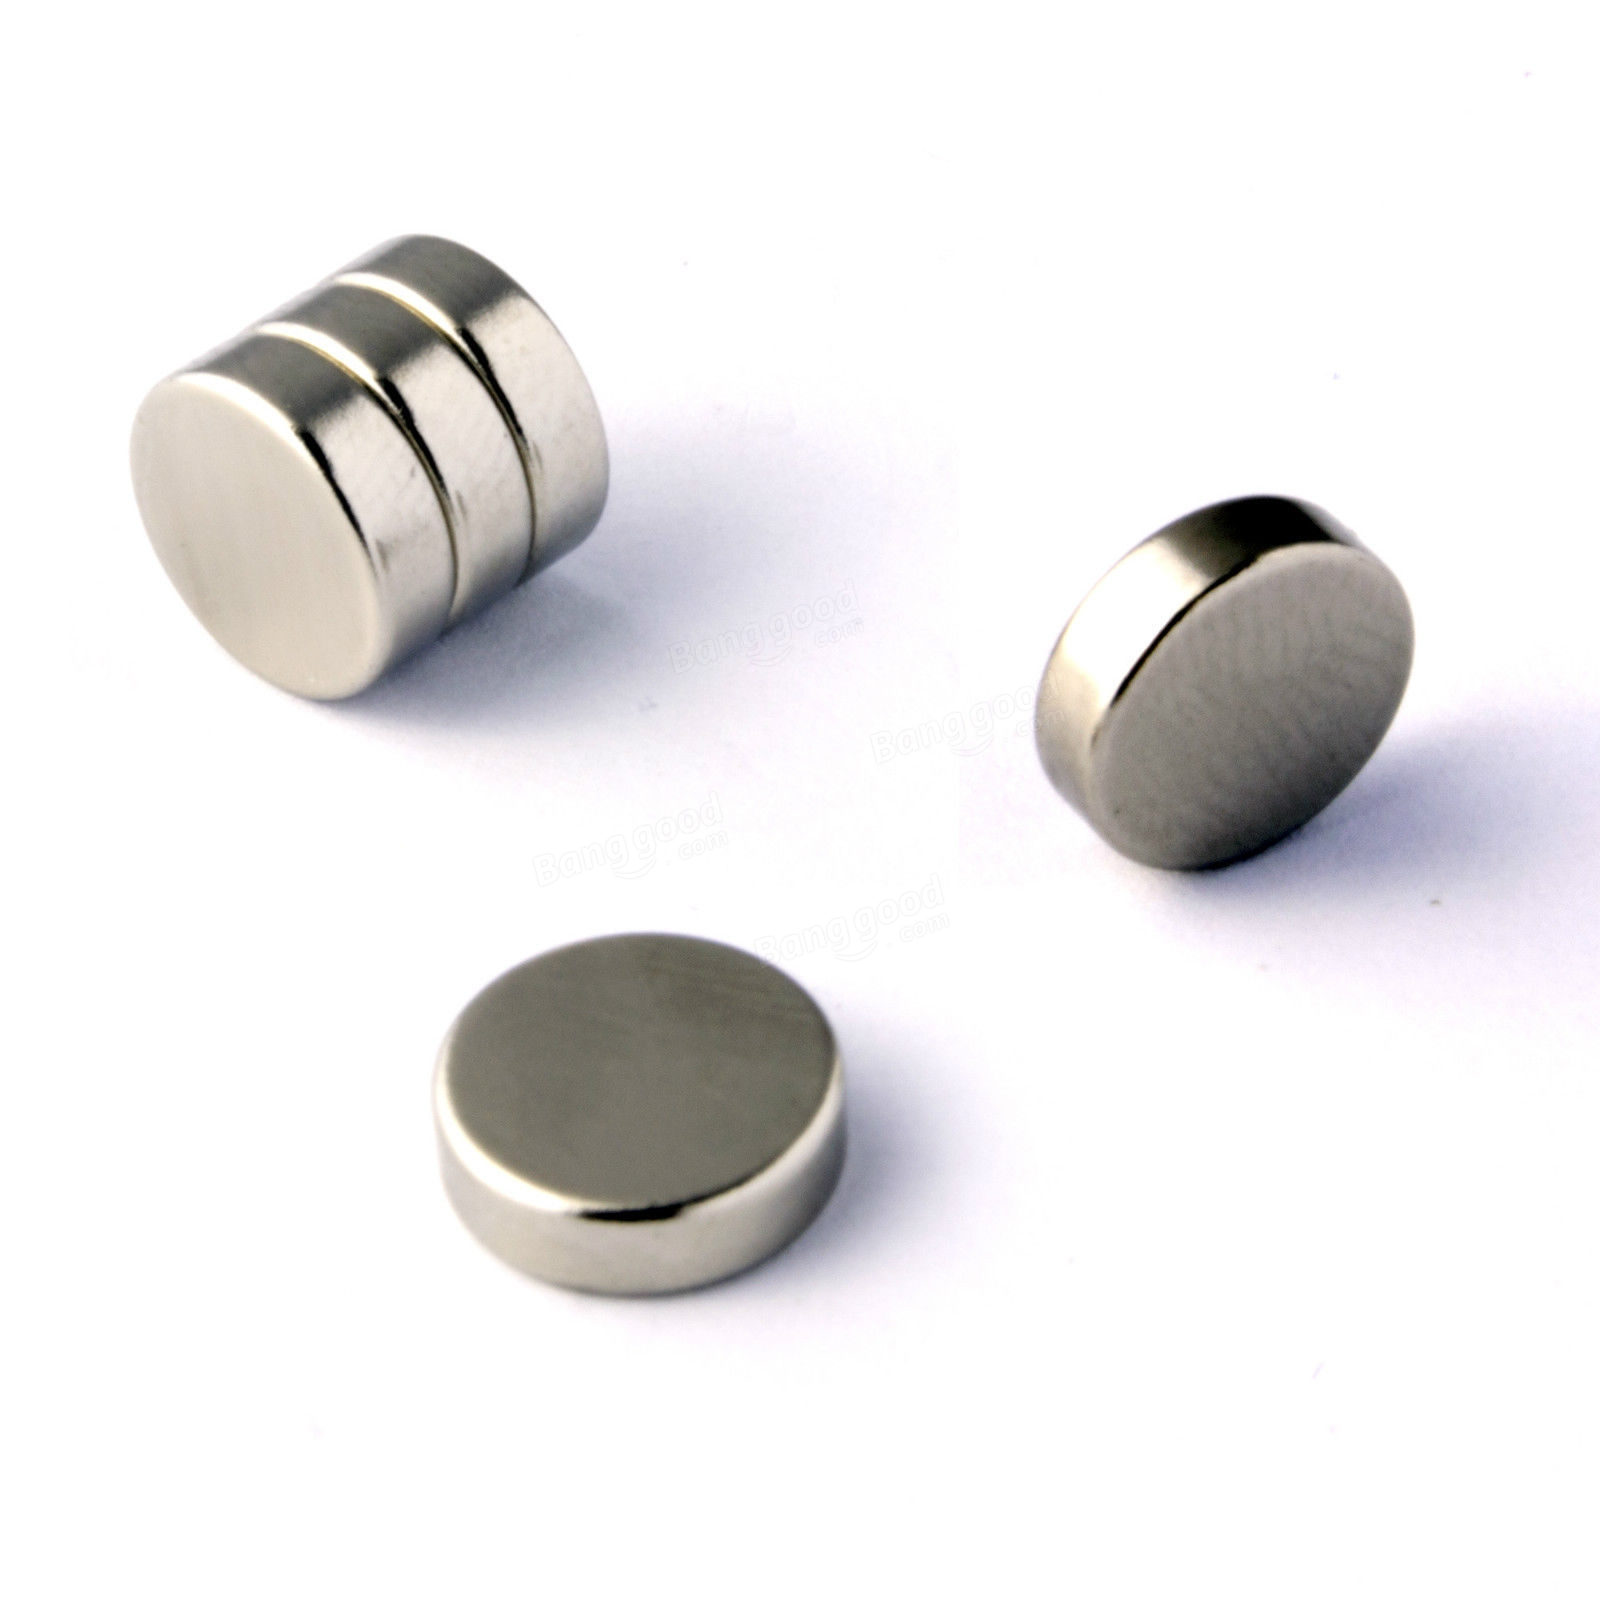 5pcs n38 10mmx3mm strong round magnets rare earth. Black Bedroom Furniture Sets. Home Design Ideas